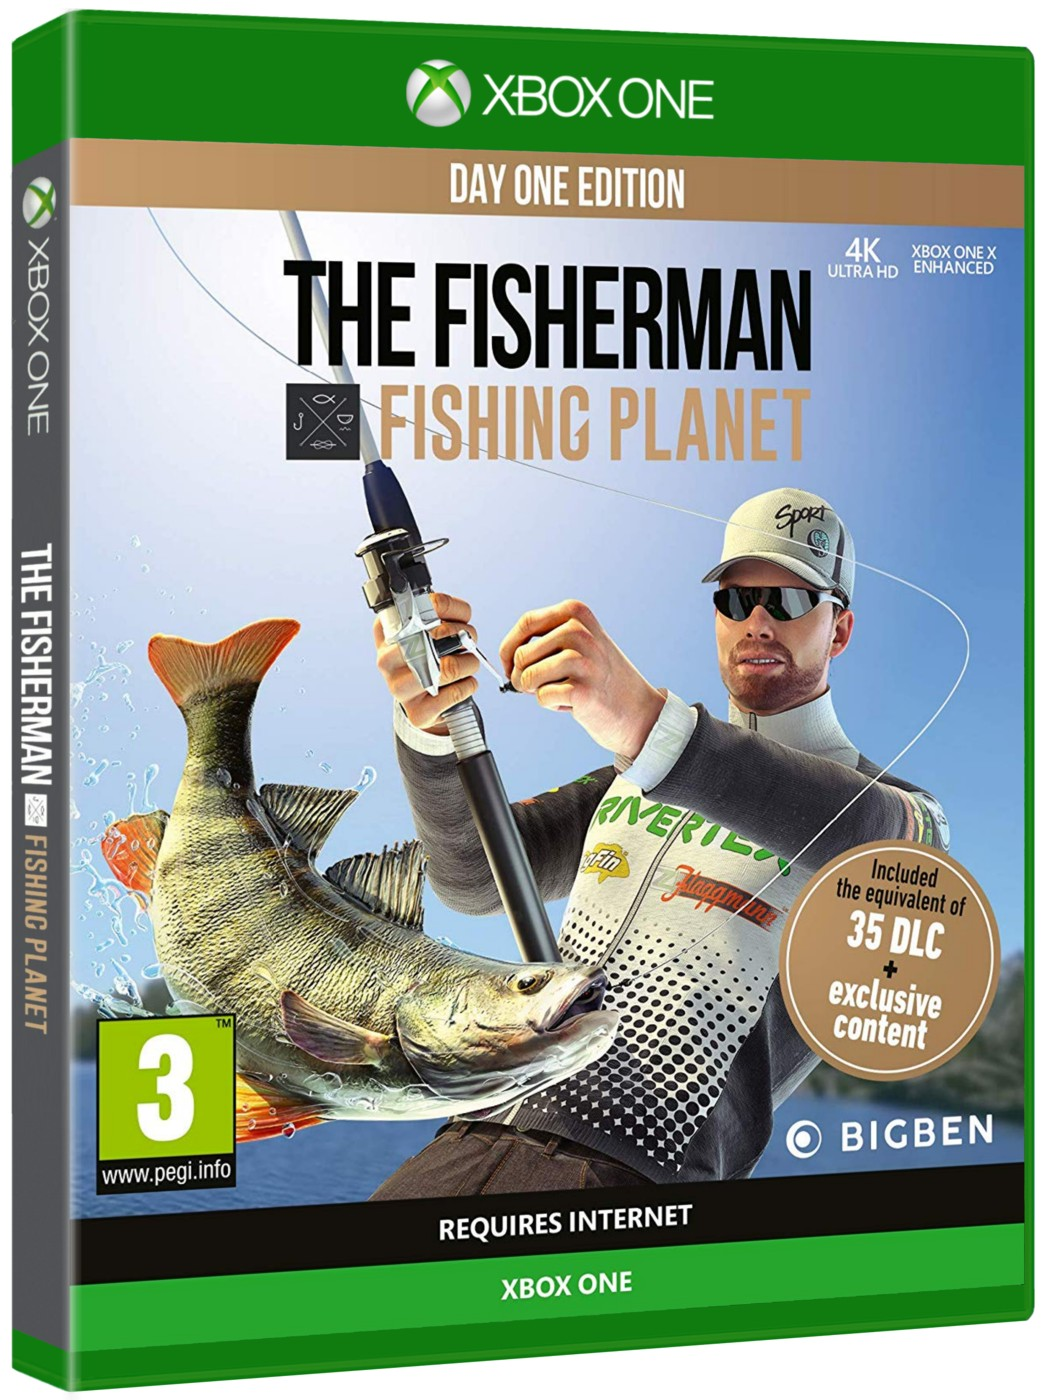 The FisherMan: Fishing Planet (Day One Edition) - Xbox One